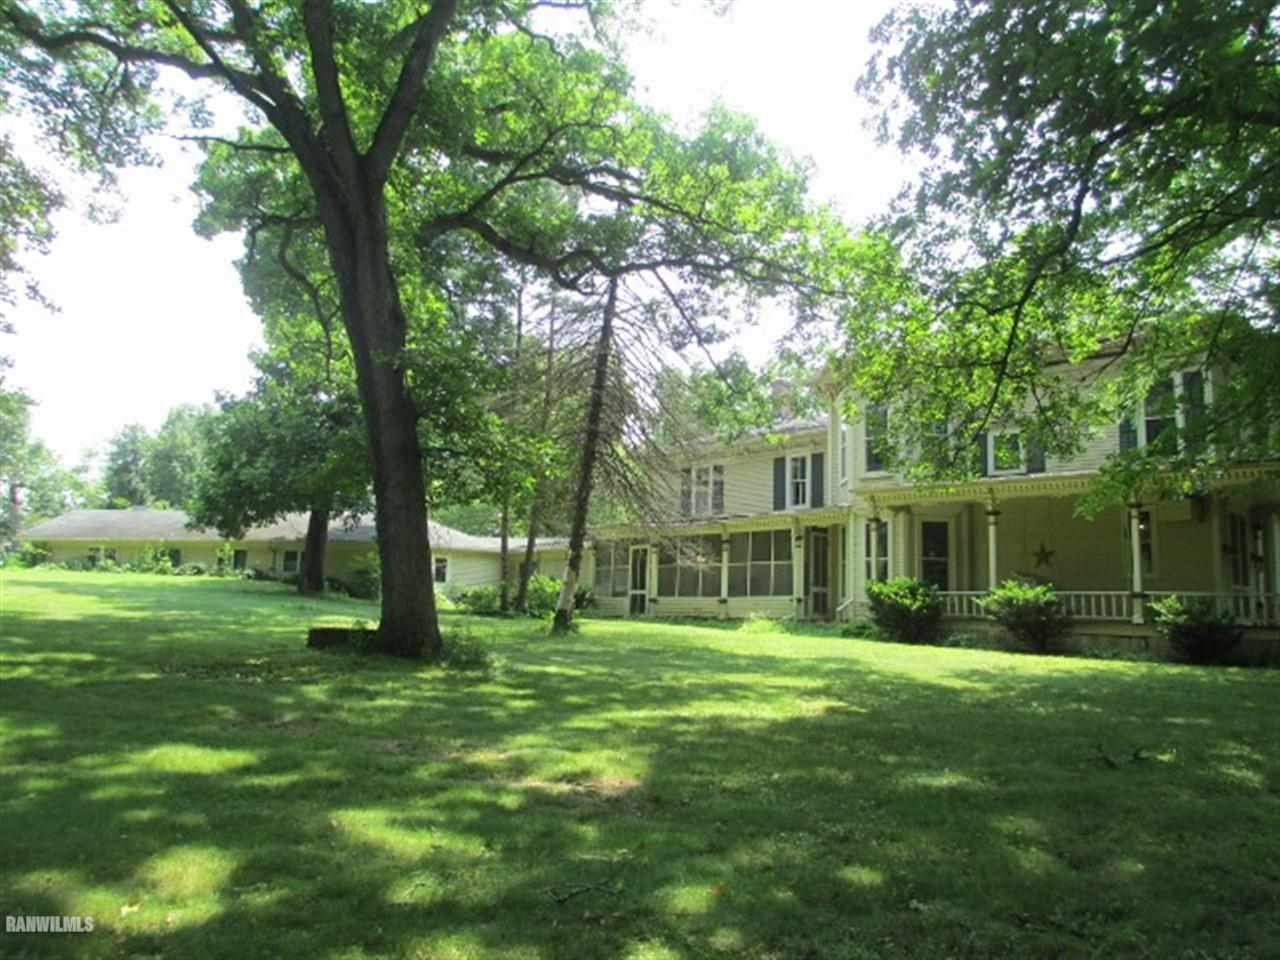 Image of Residential for Sale near Cedarville, Illinois, in Stephenson county: 21.32 acres